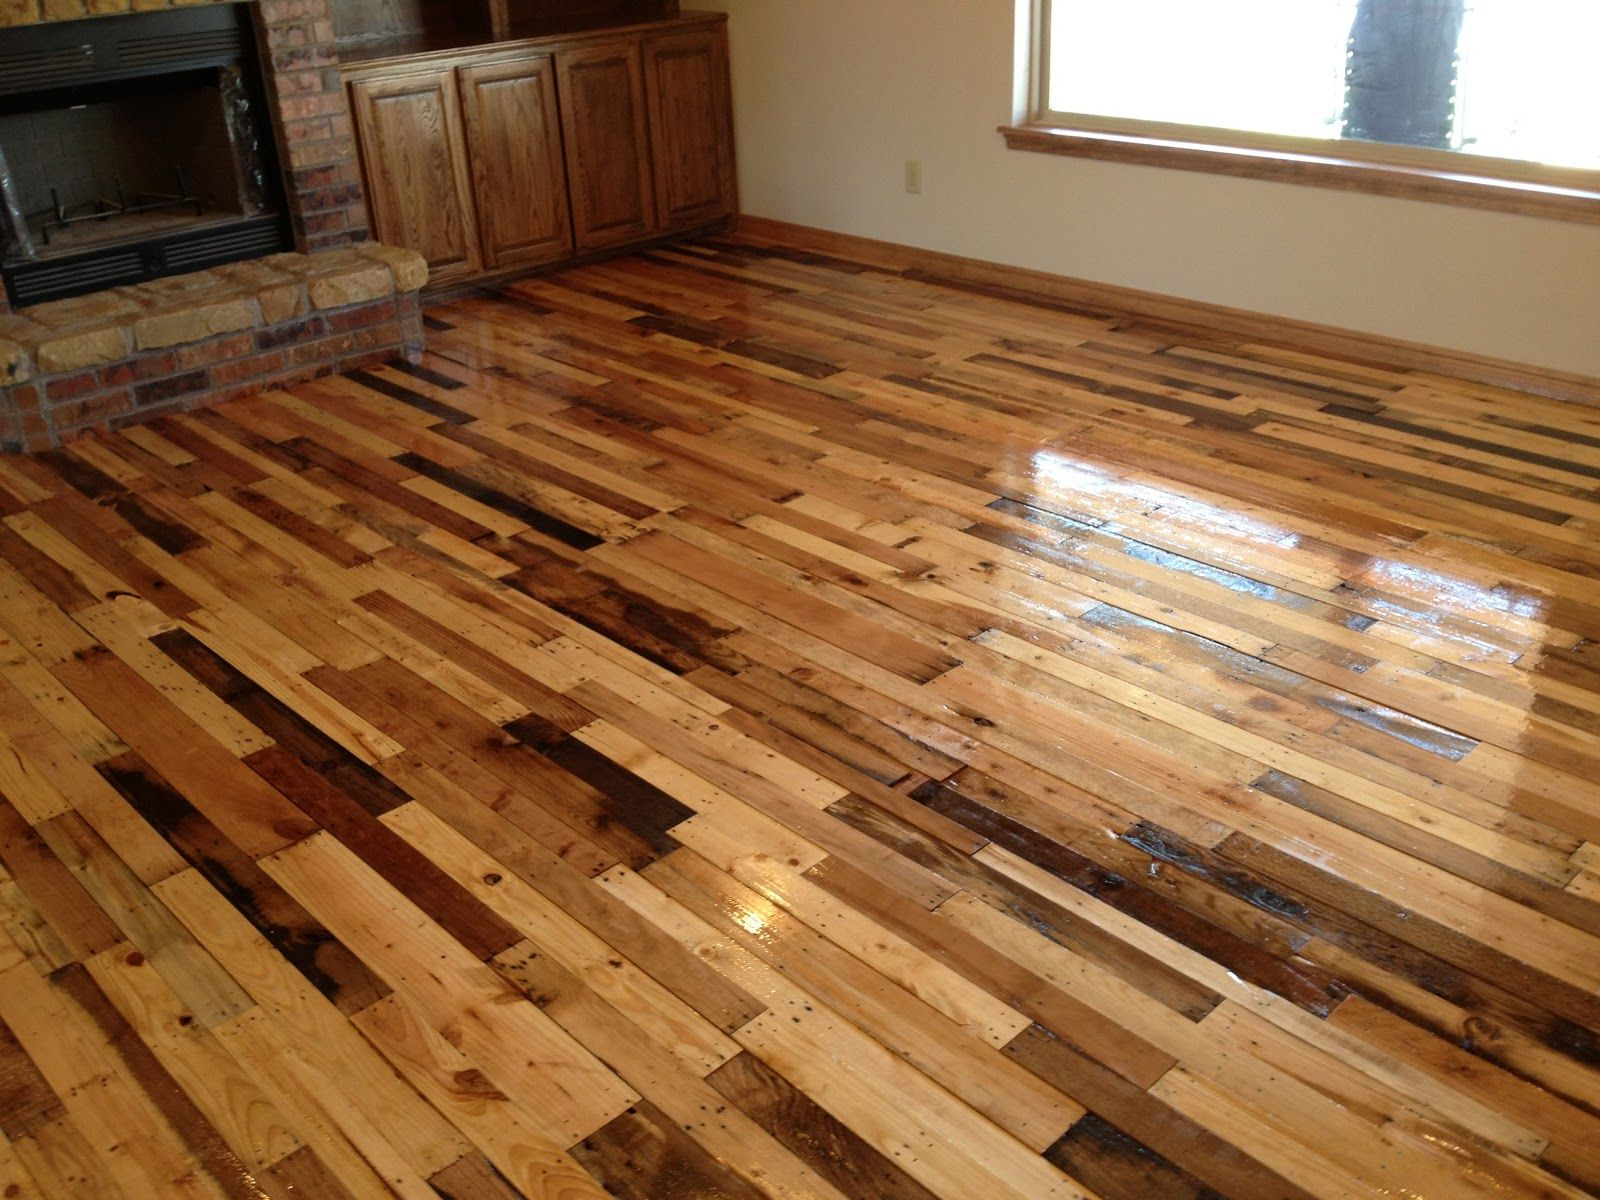 Completed Pallet Wood Floor Abuildingweshallgo Blo Rustic Home Décor Ranch Style Country Reclaimed Diy Flooring Recycle